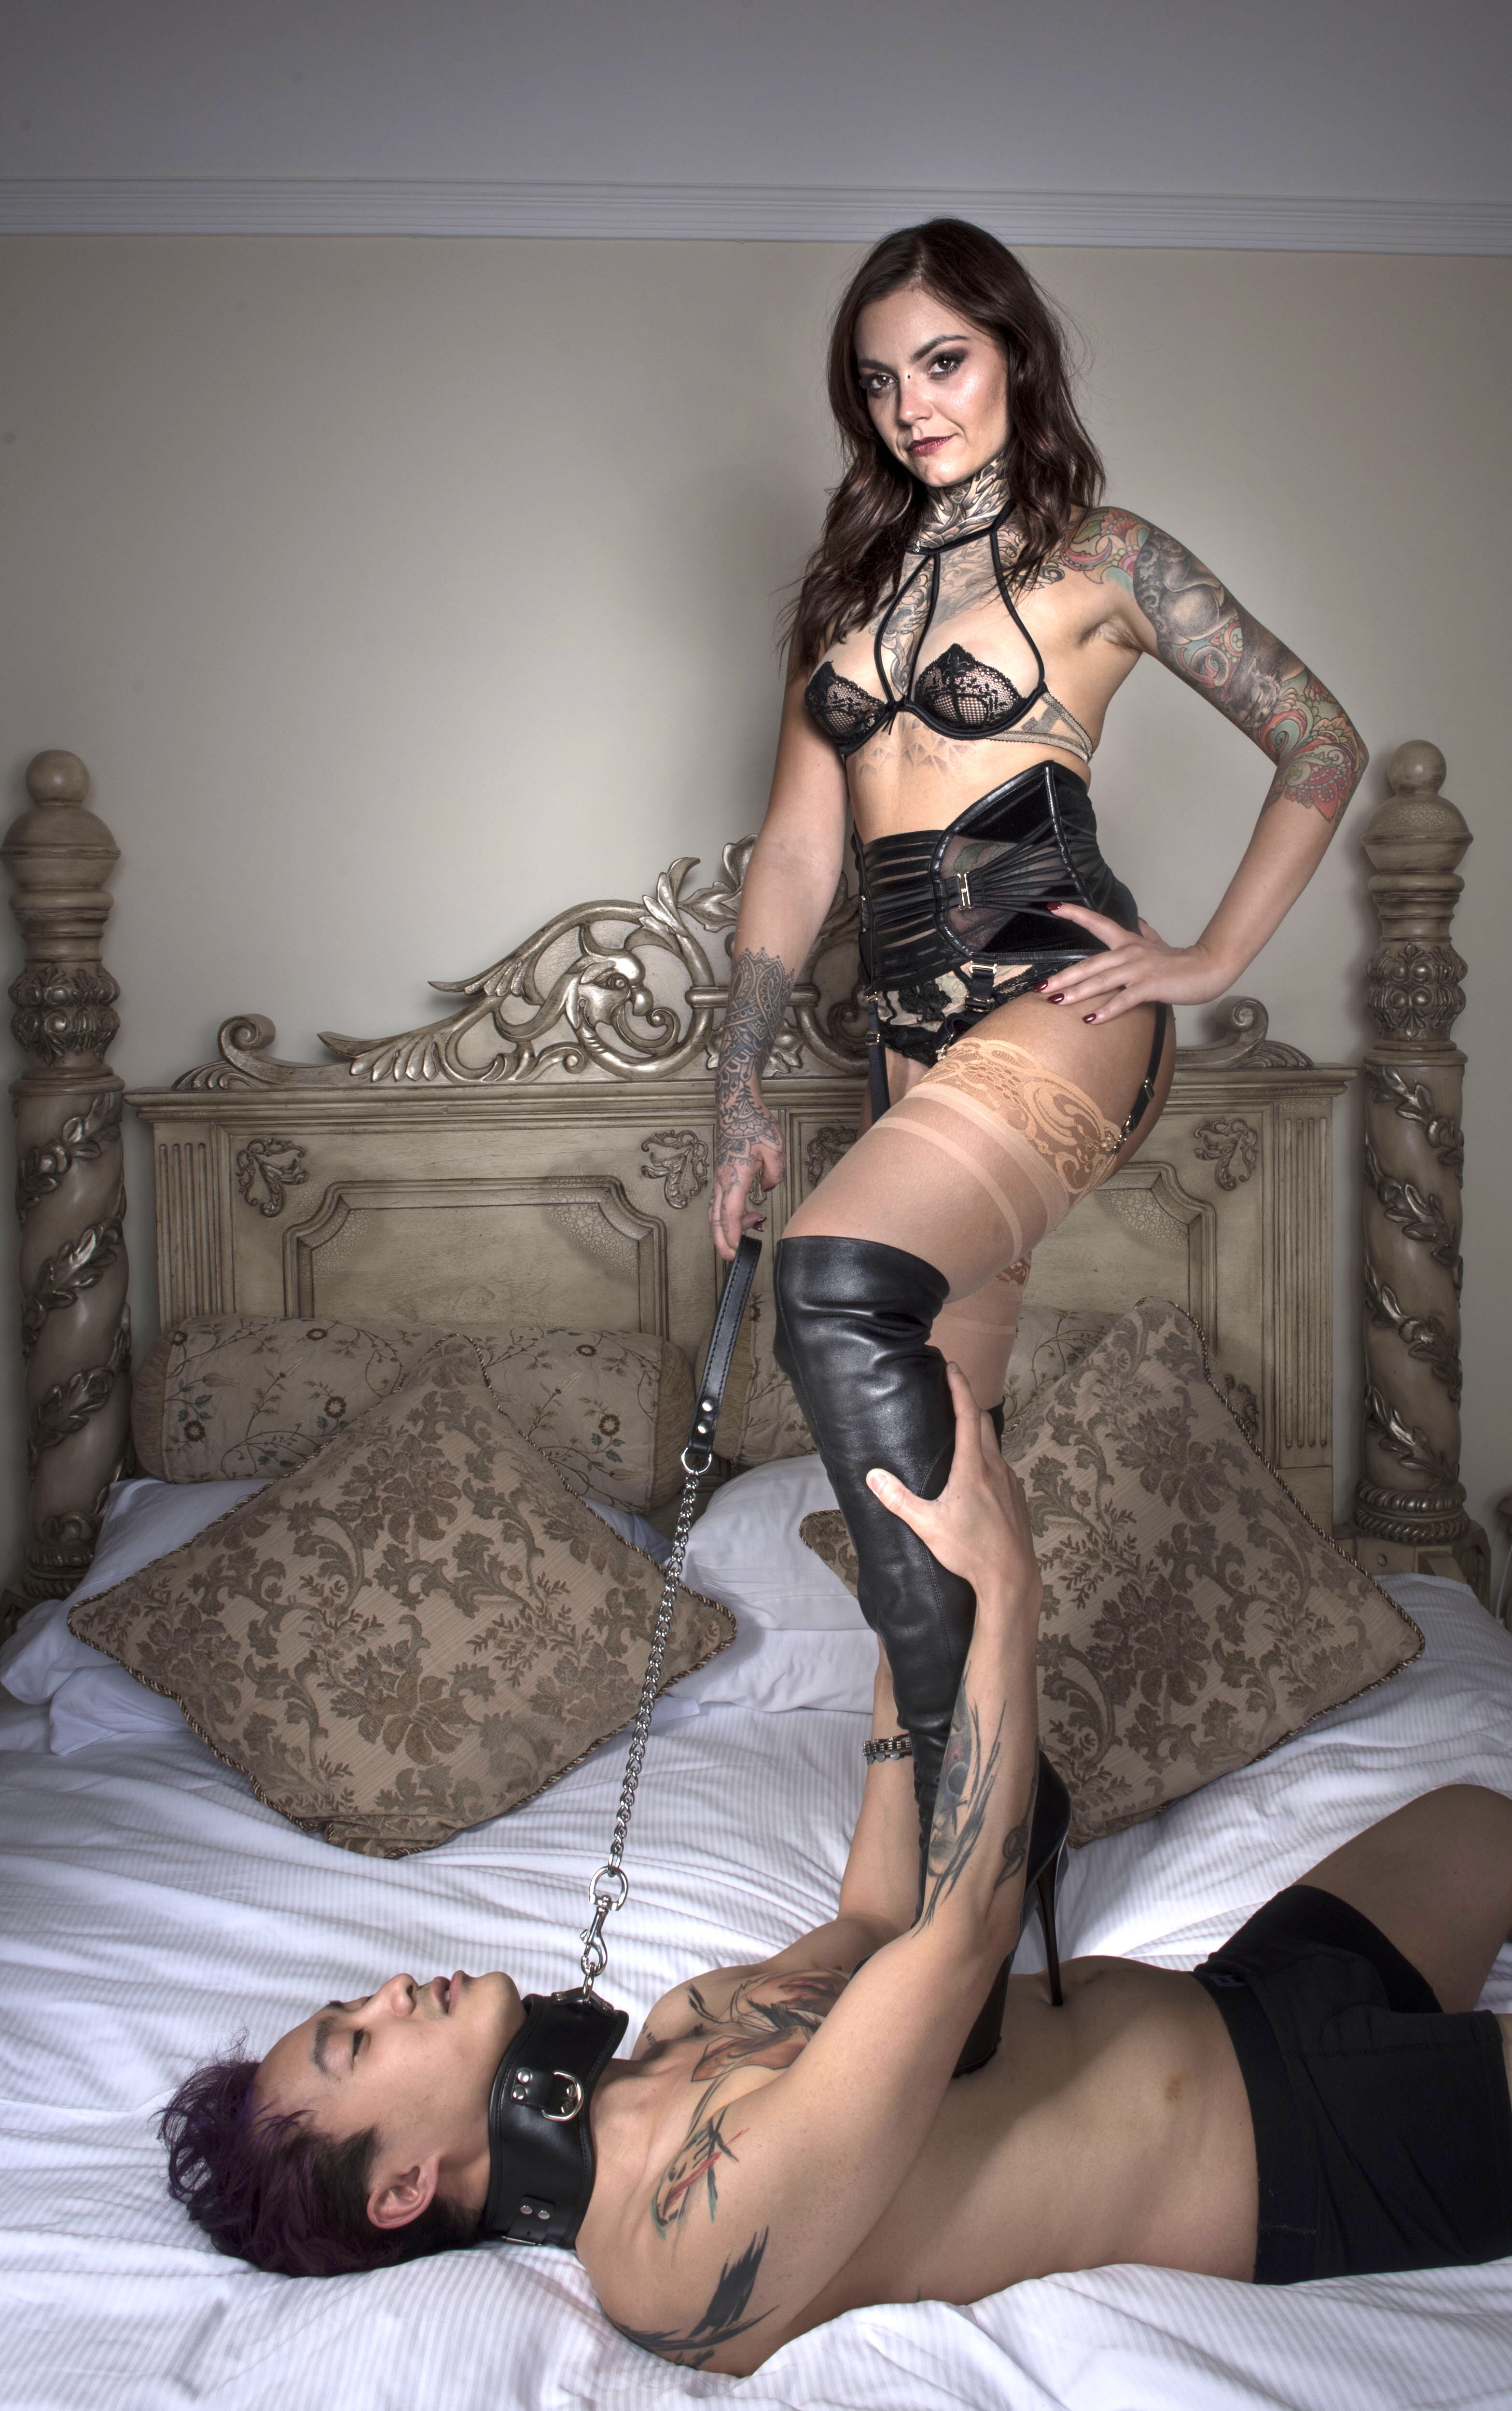 Topic Excellent exeter bdsm mistresses apologise, but